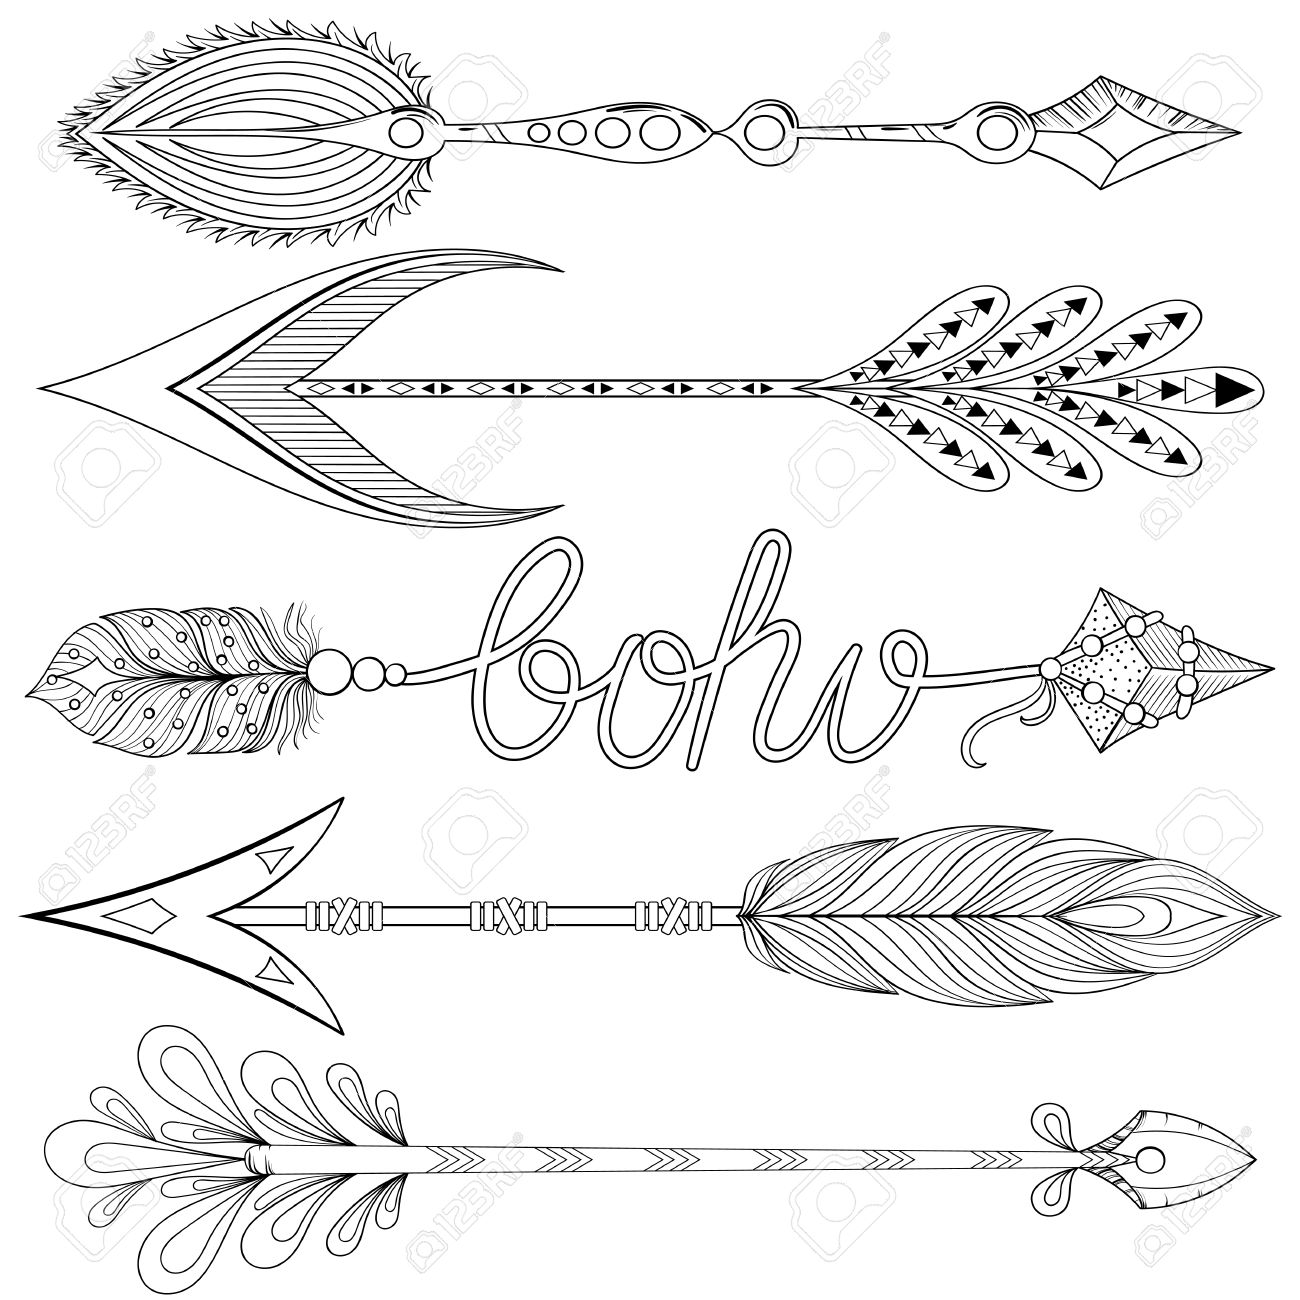 1300x1300 Bohemian Arrows Set With Feathers. Hand Drawn Decorative Arrows